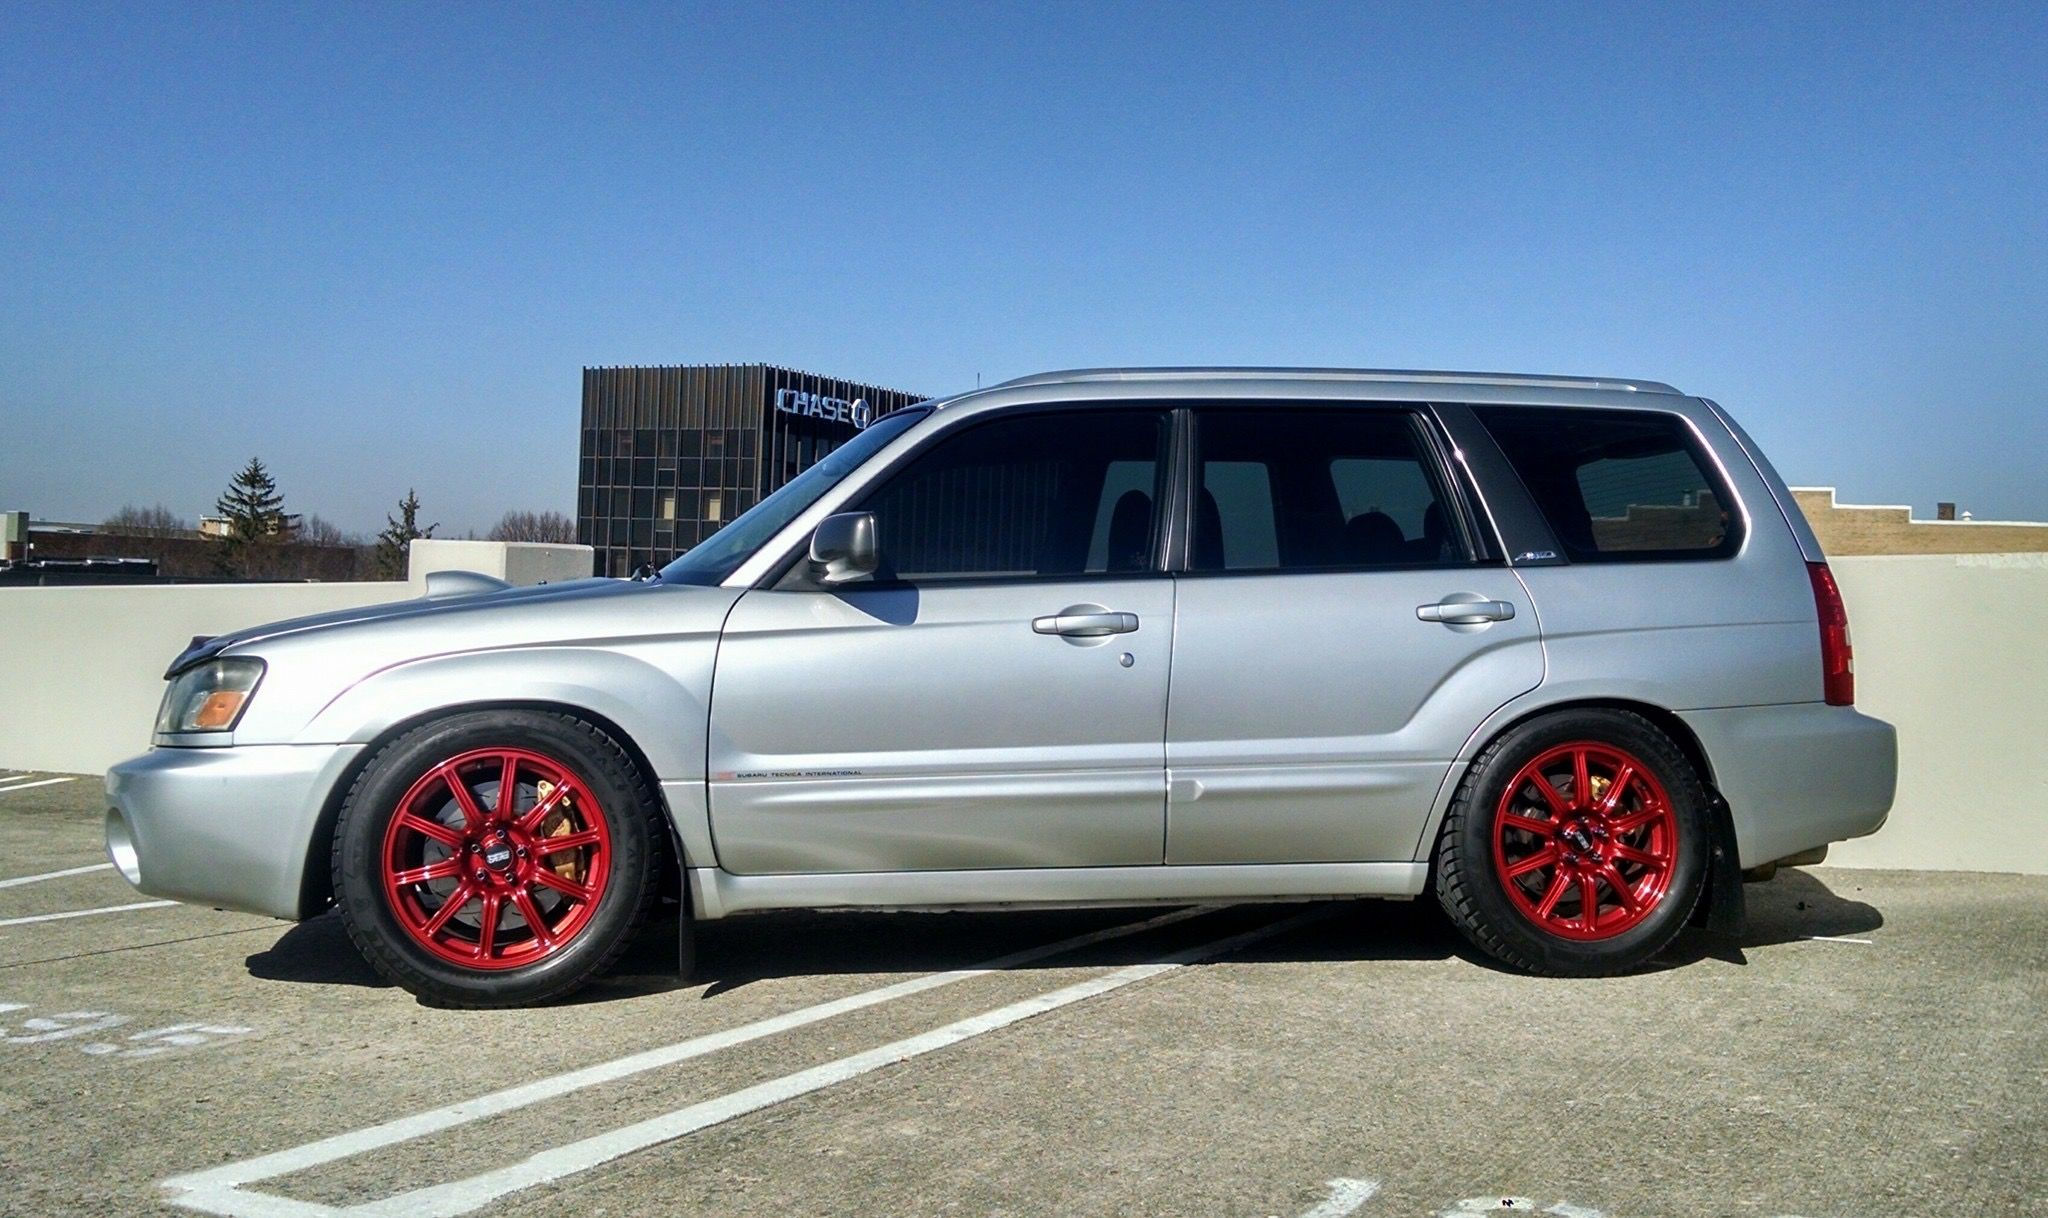 BC Racing coilovers 225/55 tires on 17x7 5 STi BBS   Fozzy